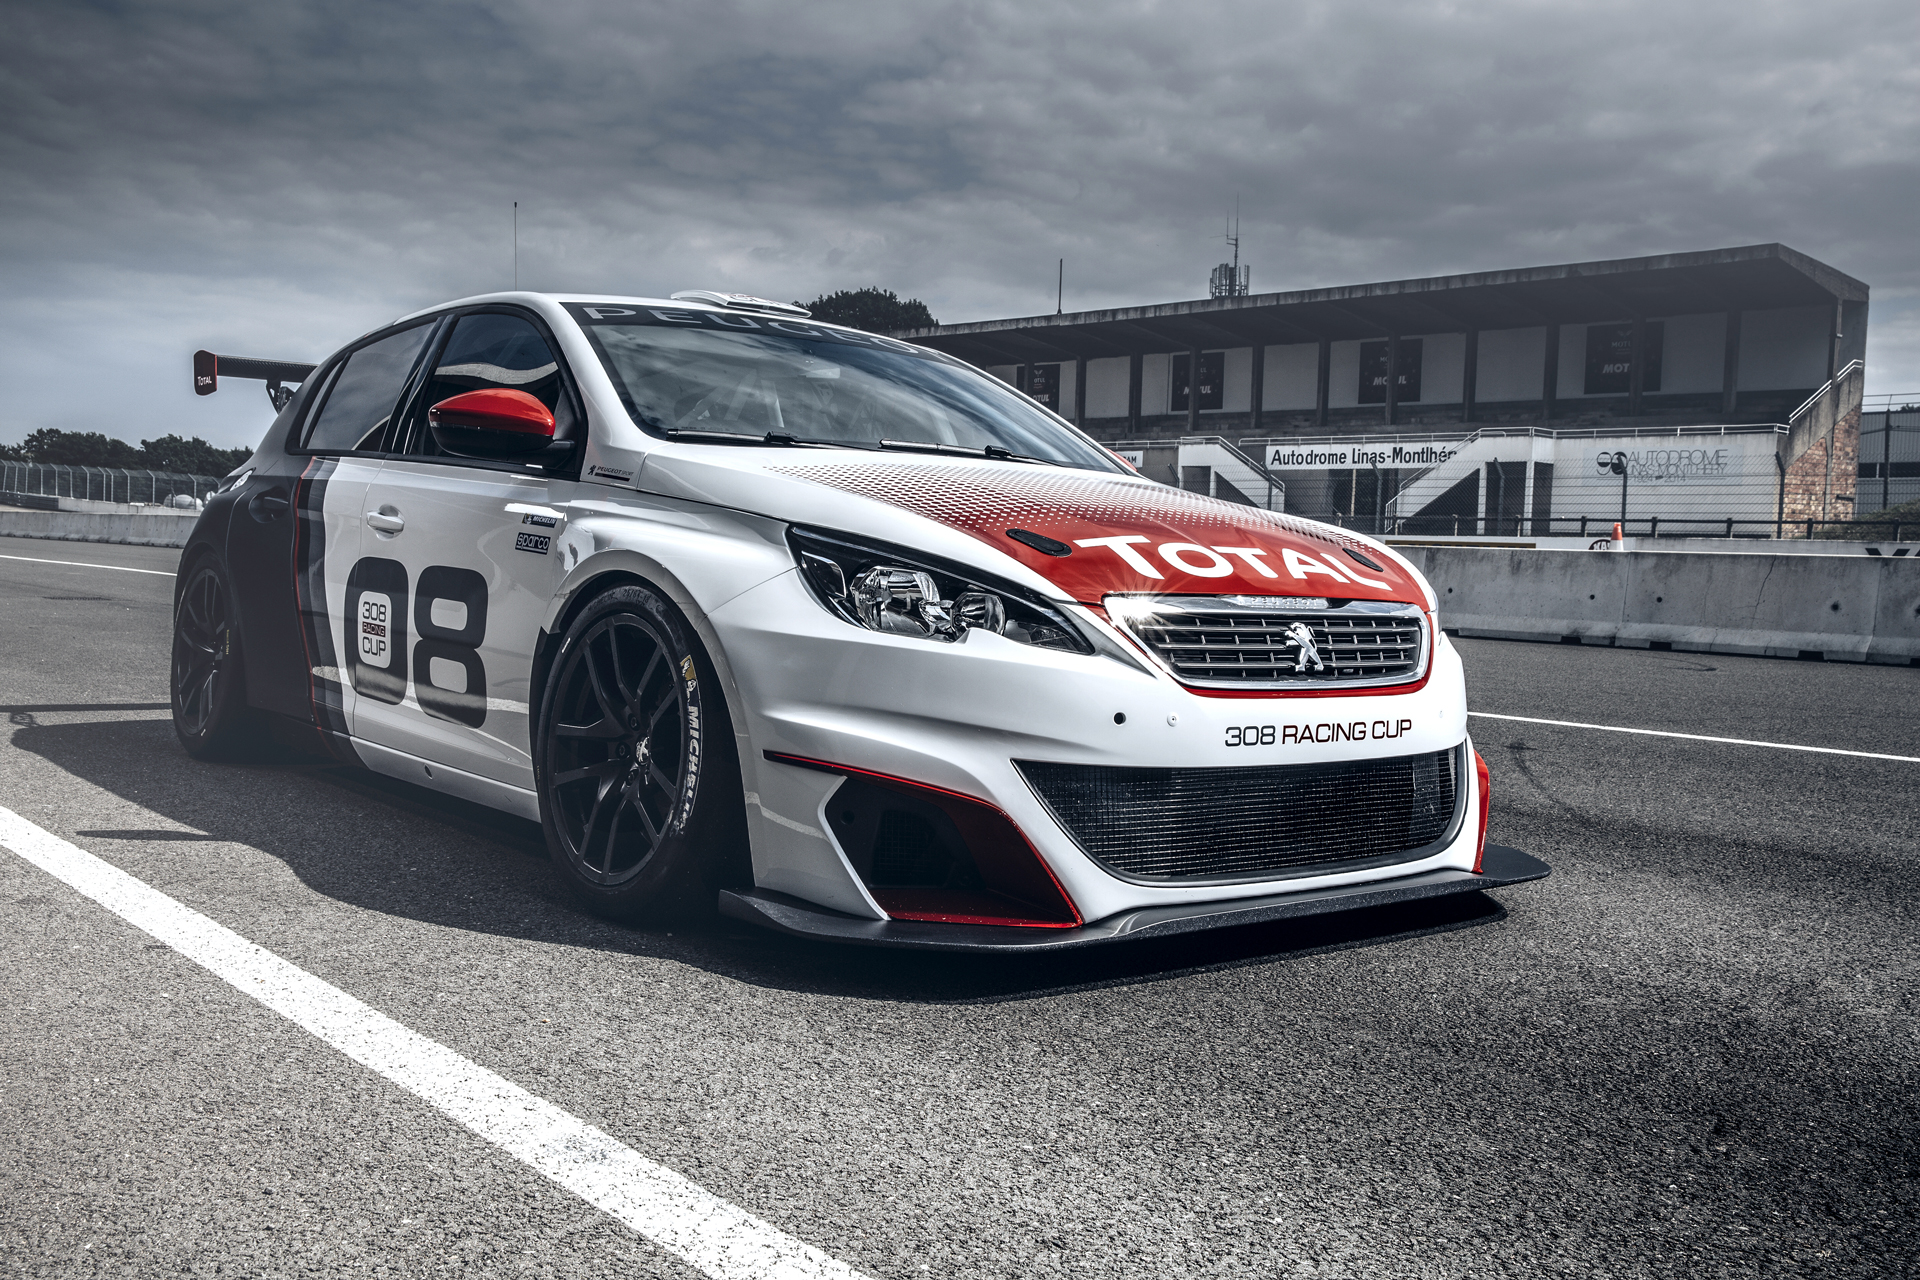 Peugeot 308 Racing Cup - 2015 - profil avant / front side-face